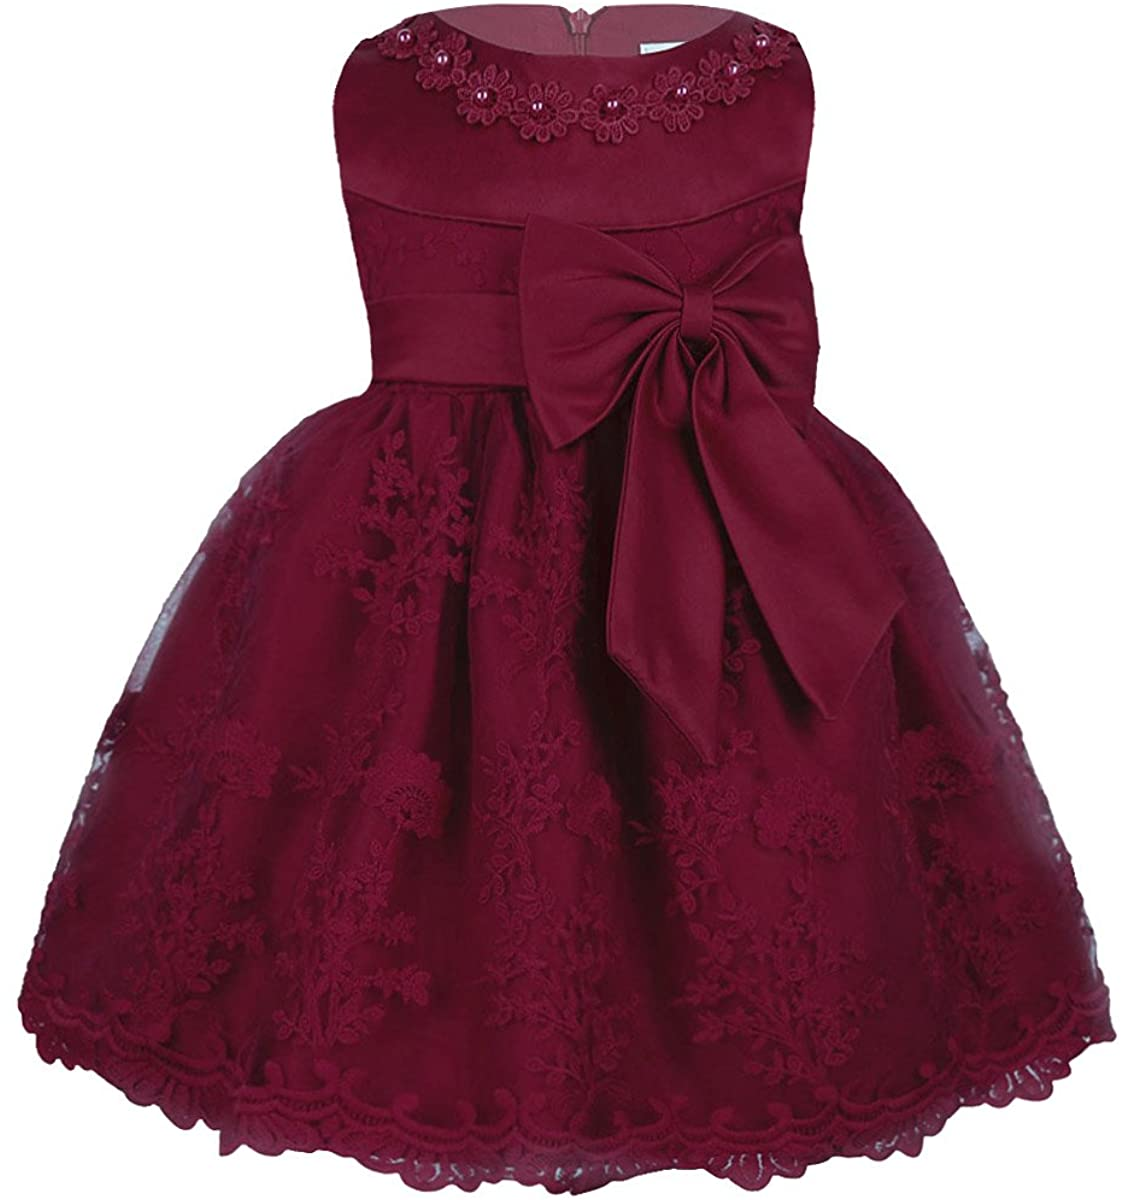 iEFiEL Baby Girls Floral Embroidered Bow Dress Princess Pageant Birthday Party Dress